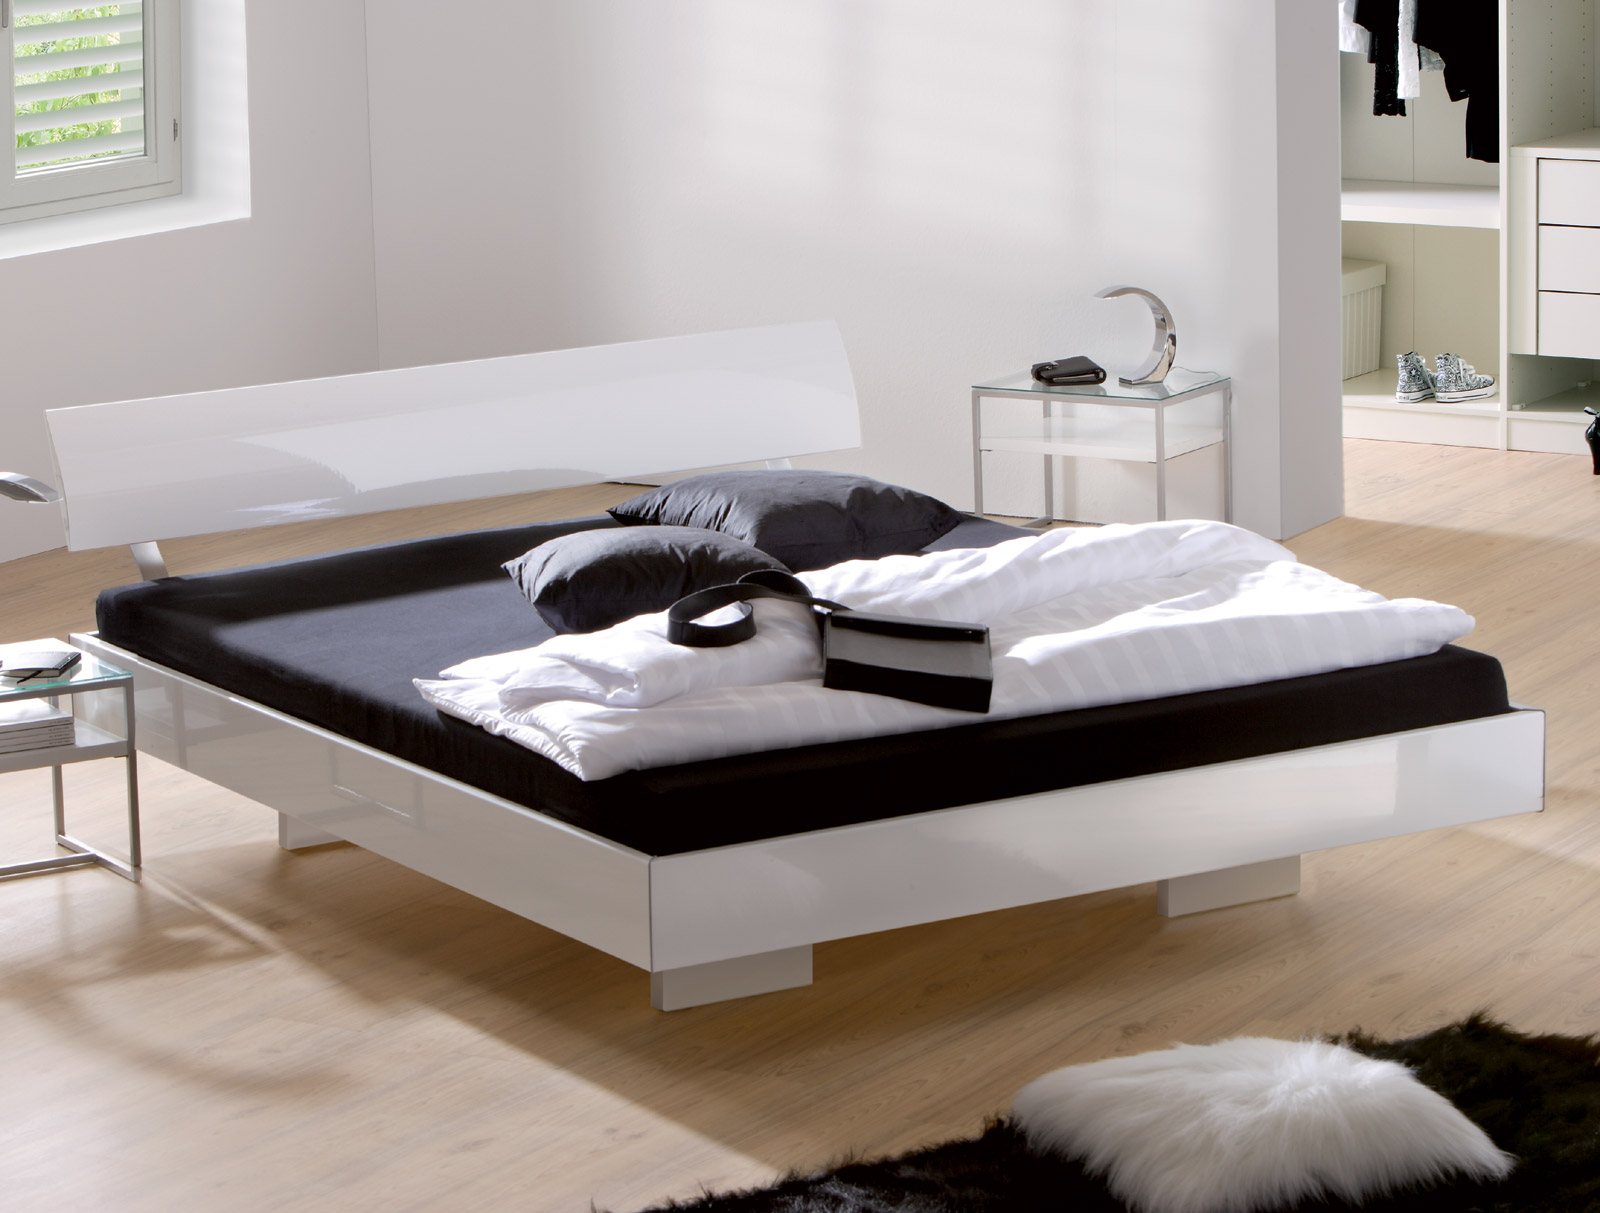 edles hochglanz bett z b in wei 140x200 cm timeless. Black Bedroom Furniture Sets. Home Design Ideas